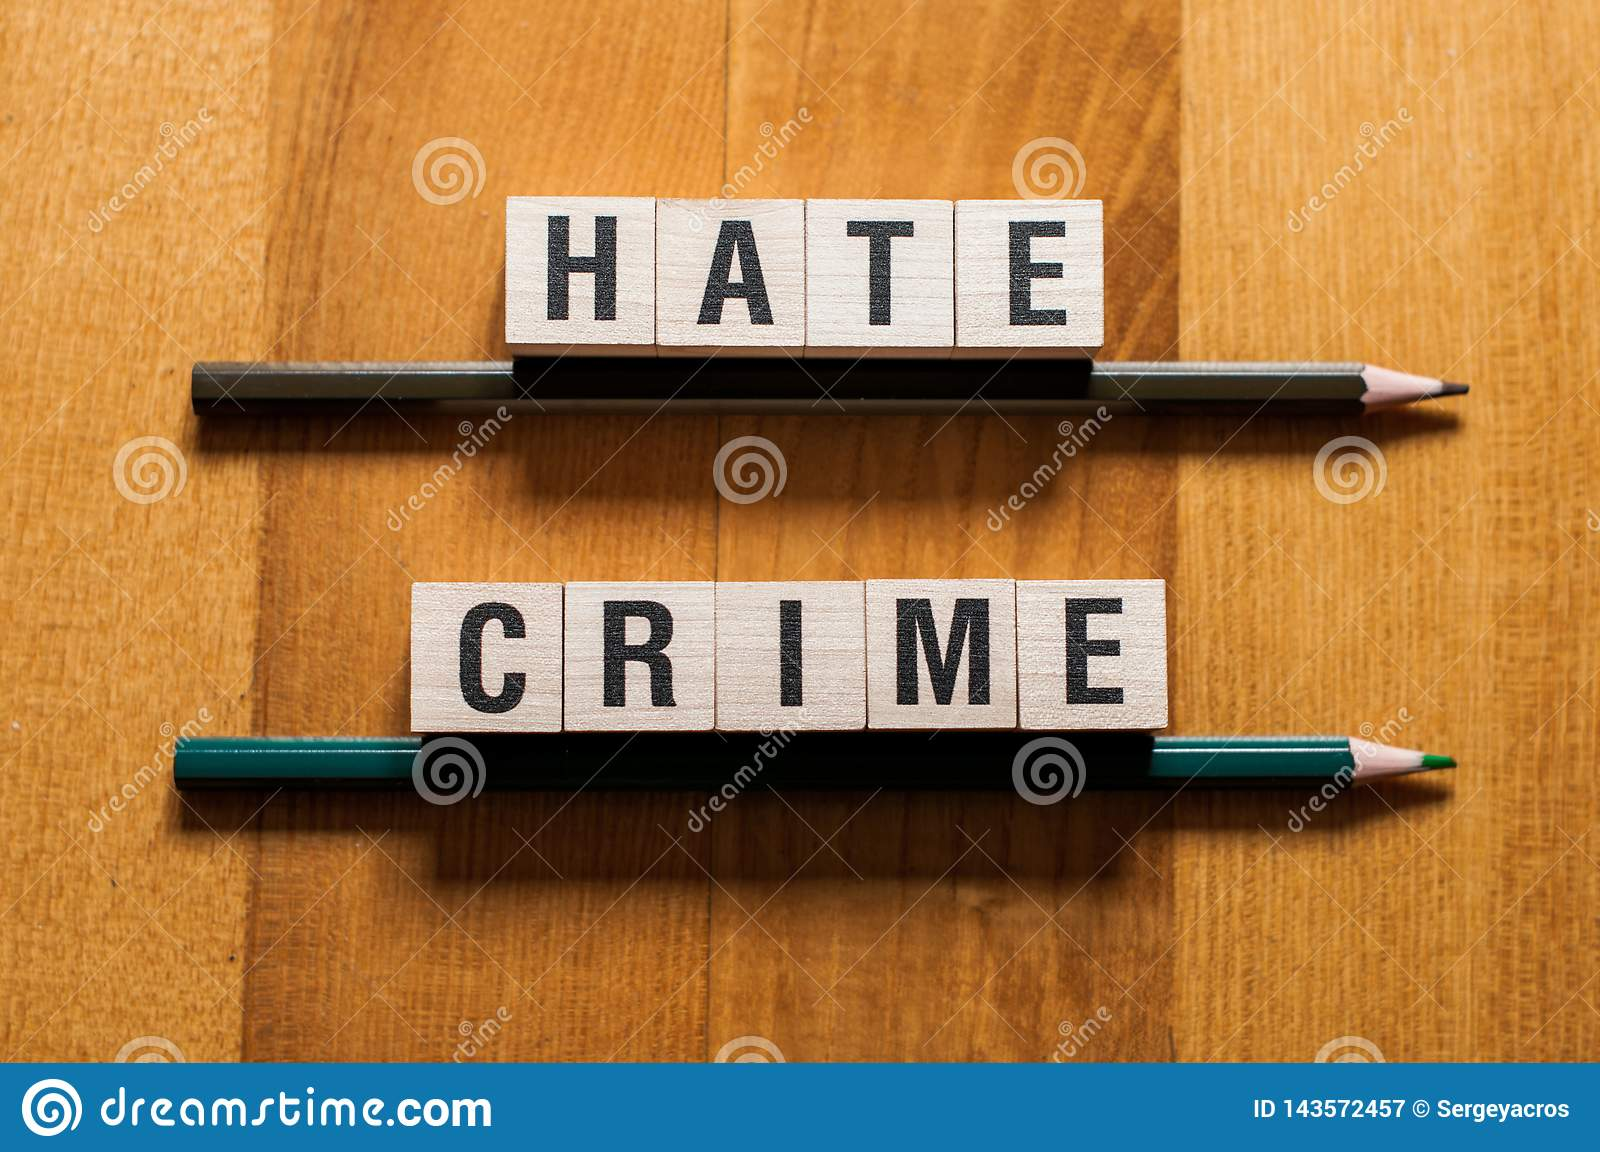 Hate crime words concept